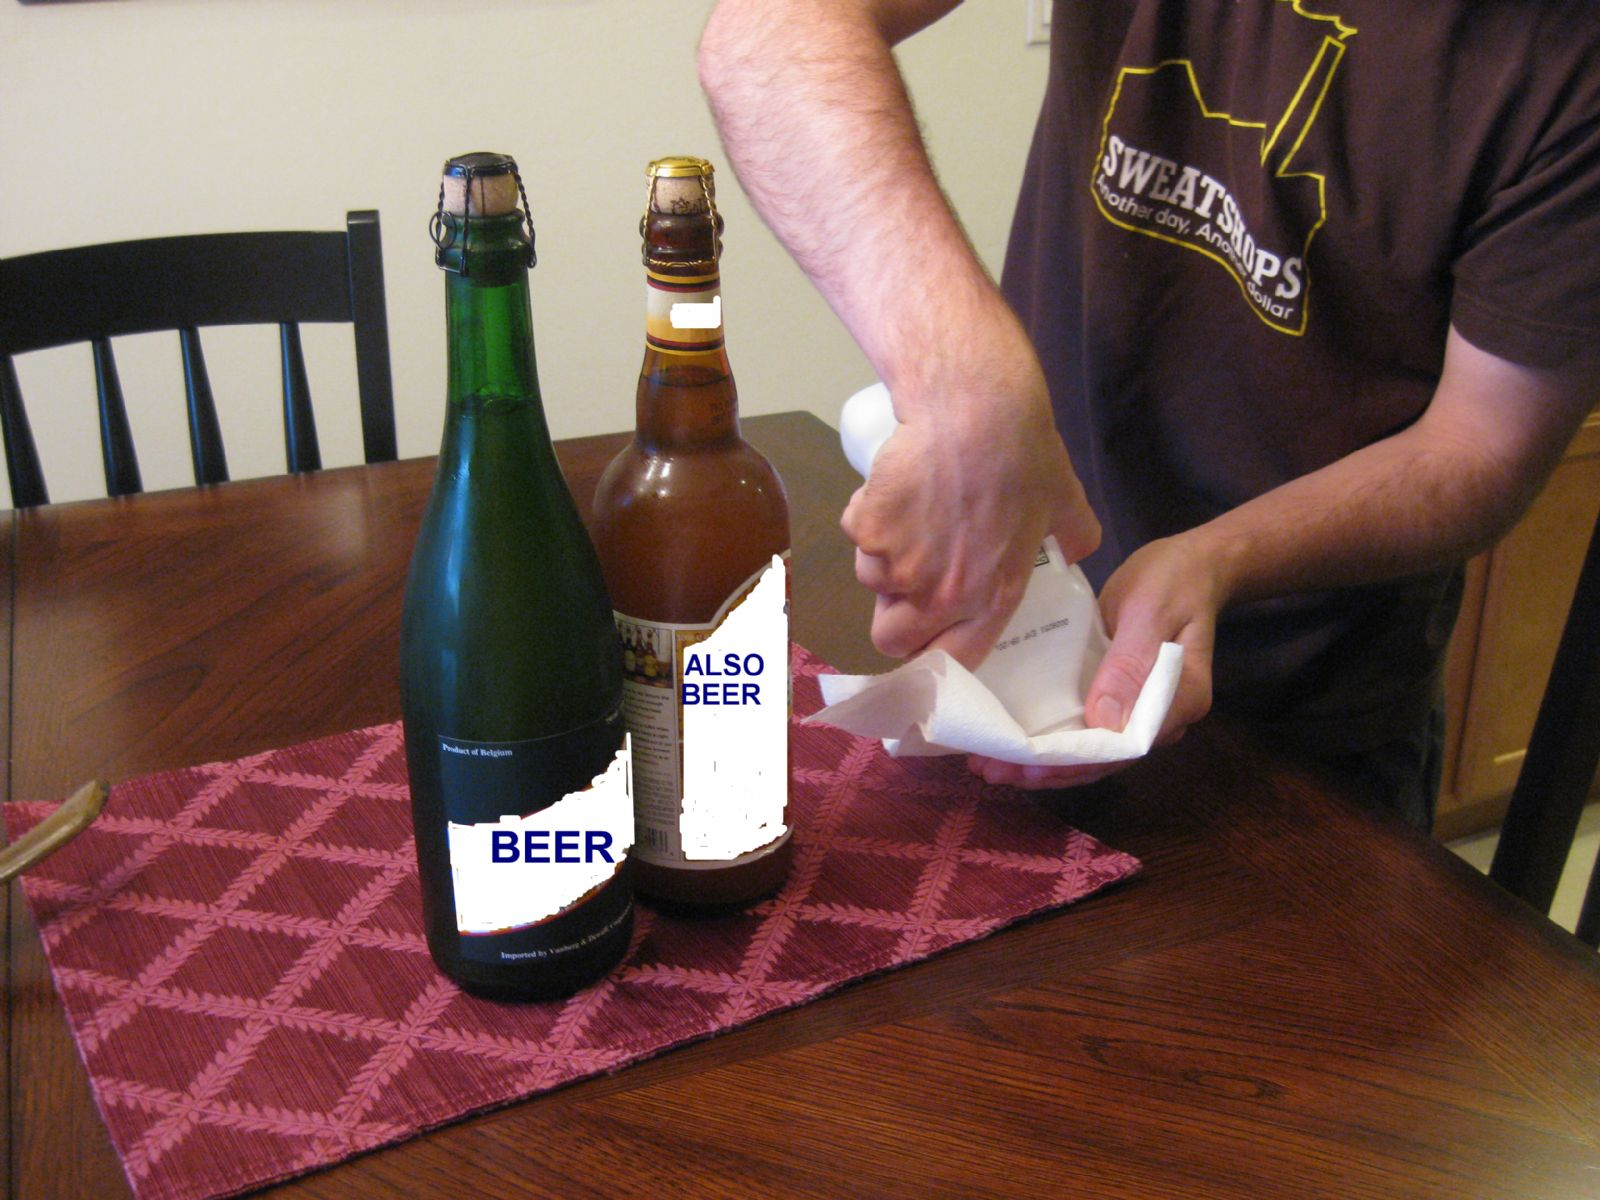 Sanitizing Beer Bottle with Rubbing Alcohol